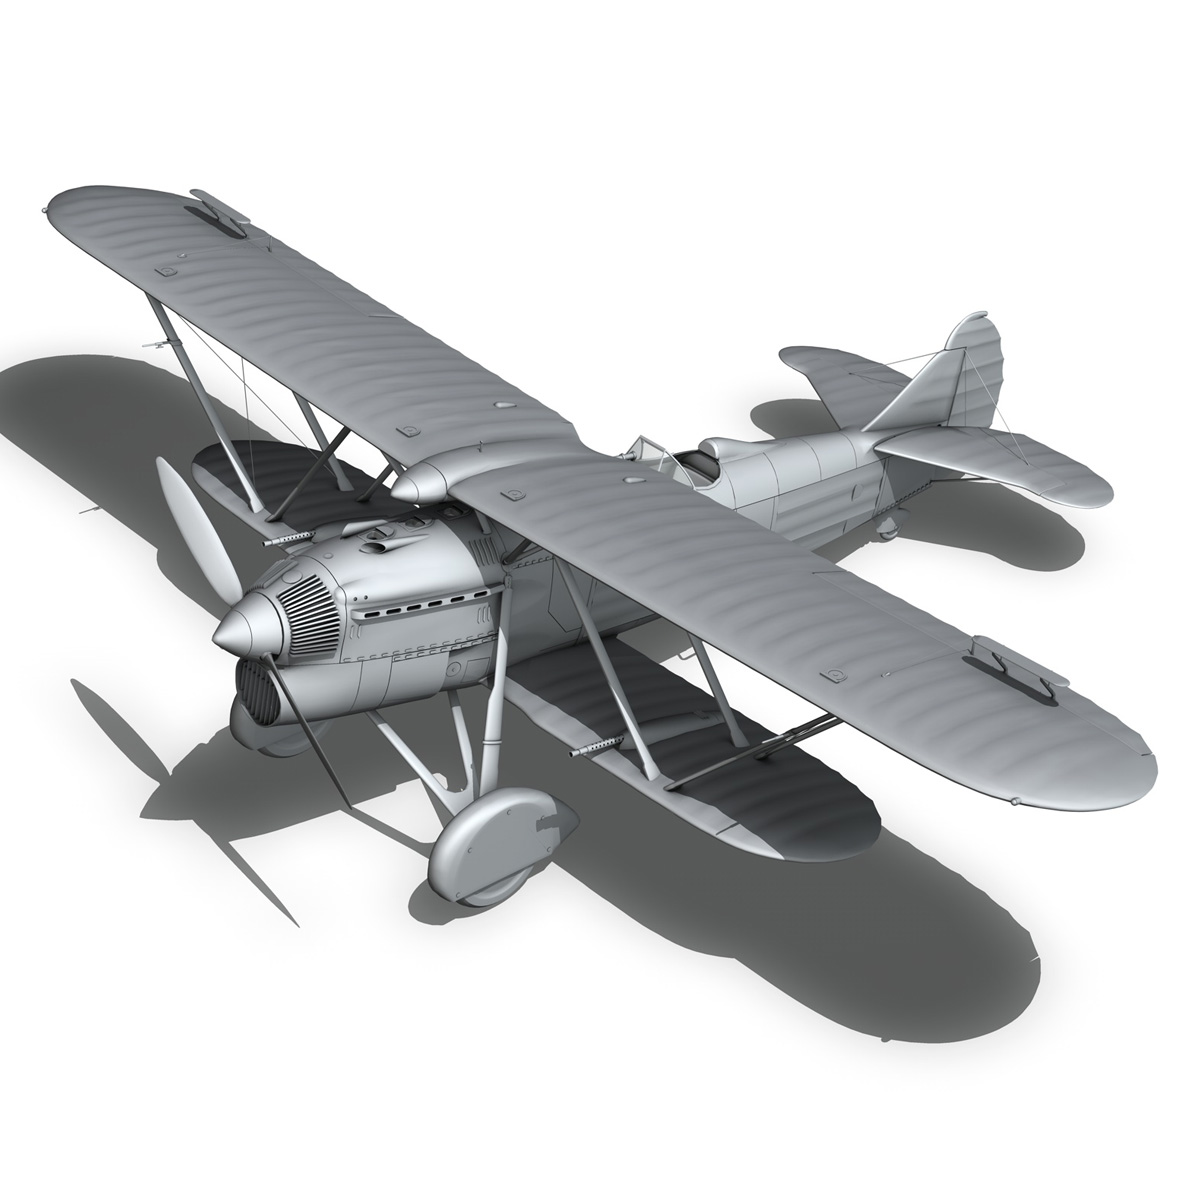 fiat cr.32 – italy airforce – 154 squadriglia 3d model fbx c4d lwo obj 268147